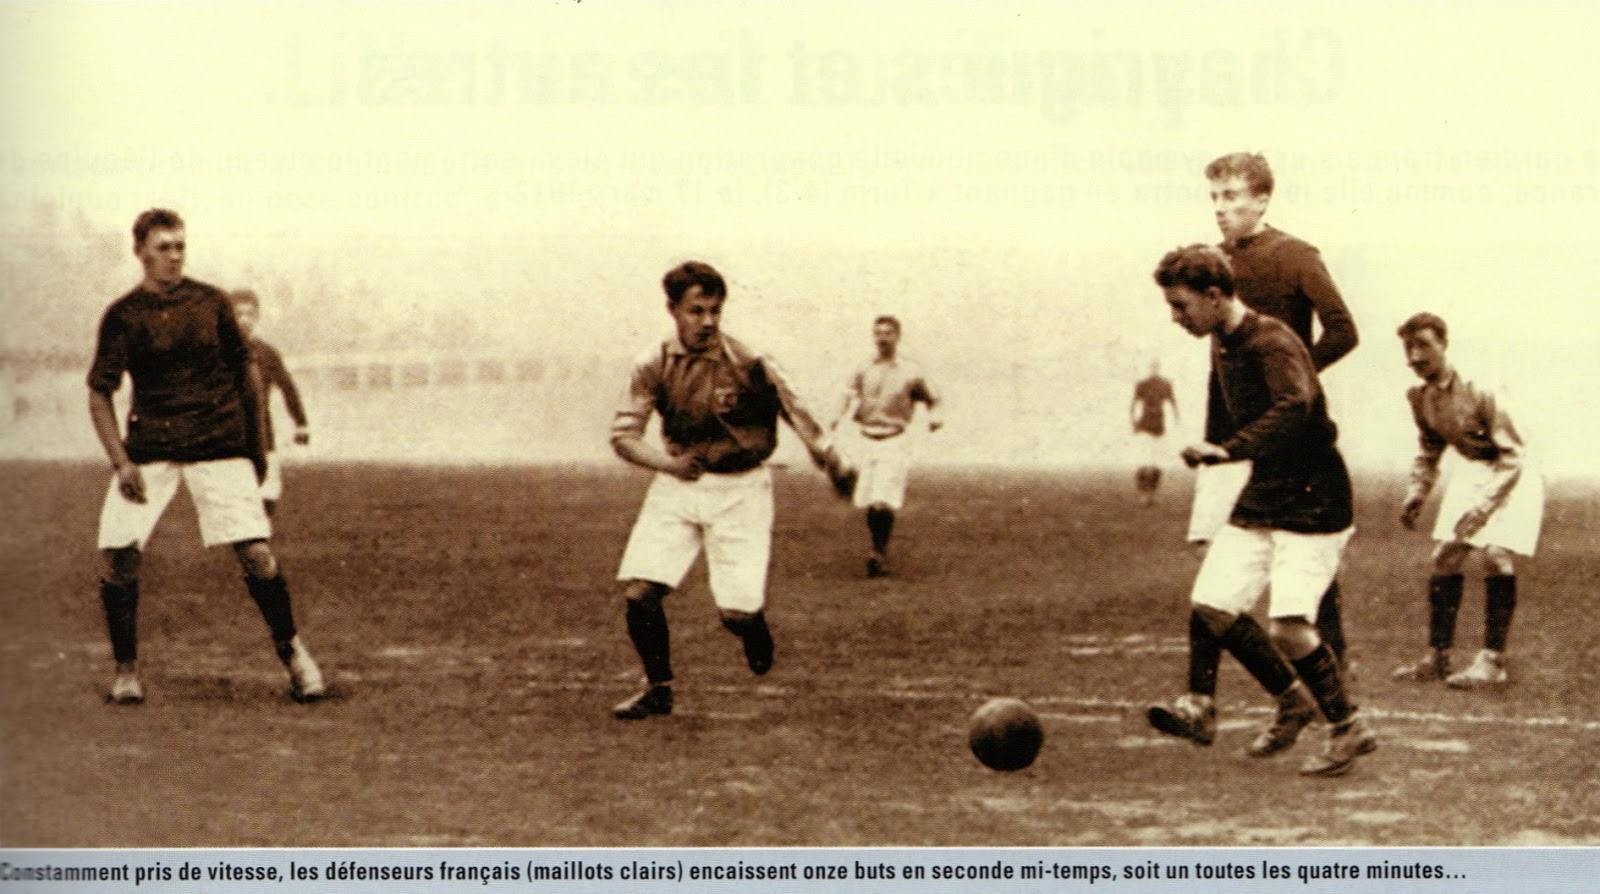 Soccer Nostalgia: New Additions: Soccer at the Olympics-Part 1 (1908-London. England)